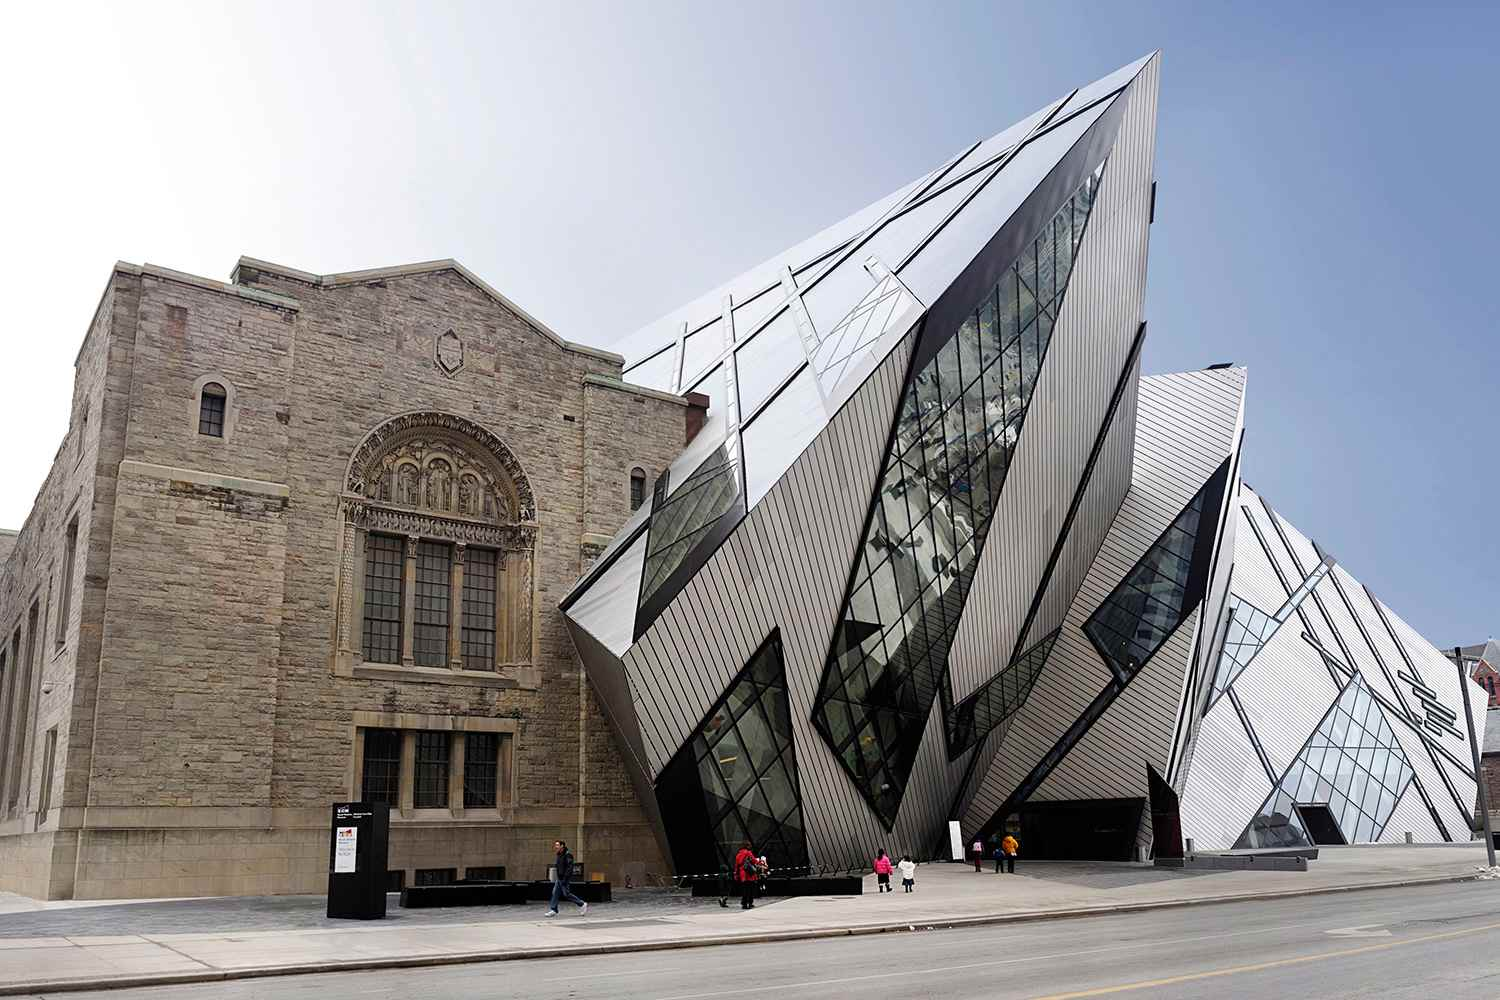 Toronto's Top Attractions & Highlights